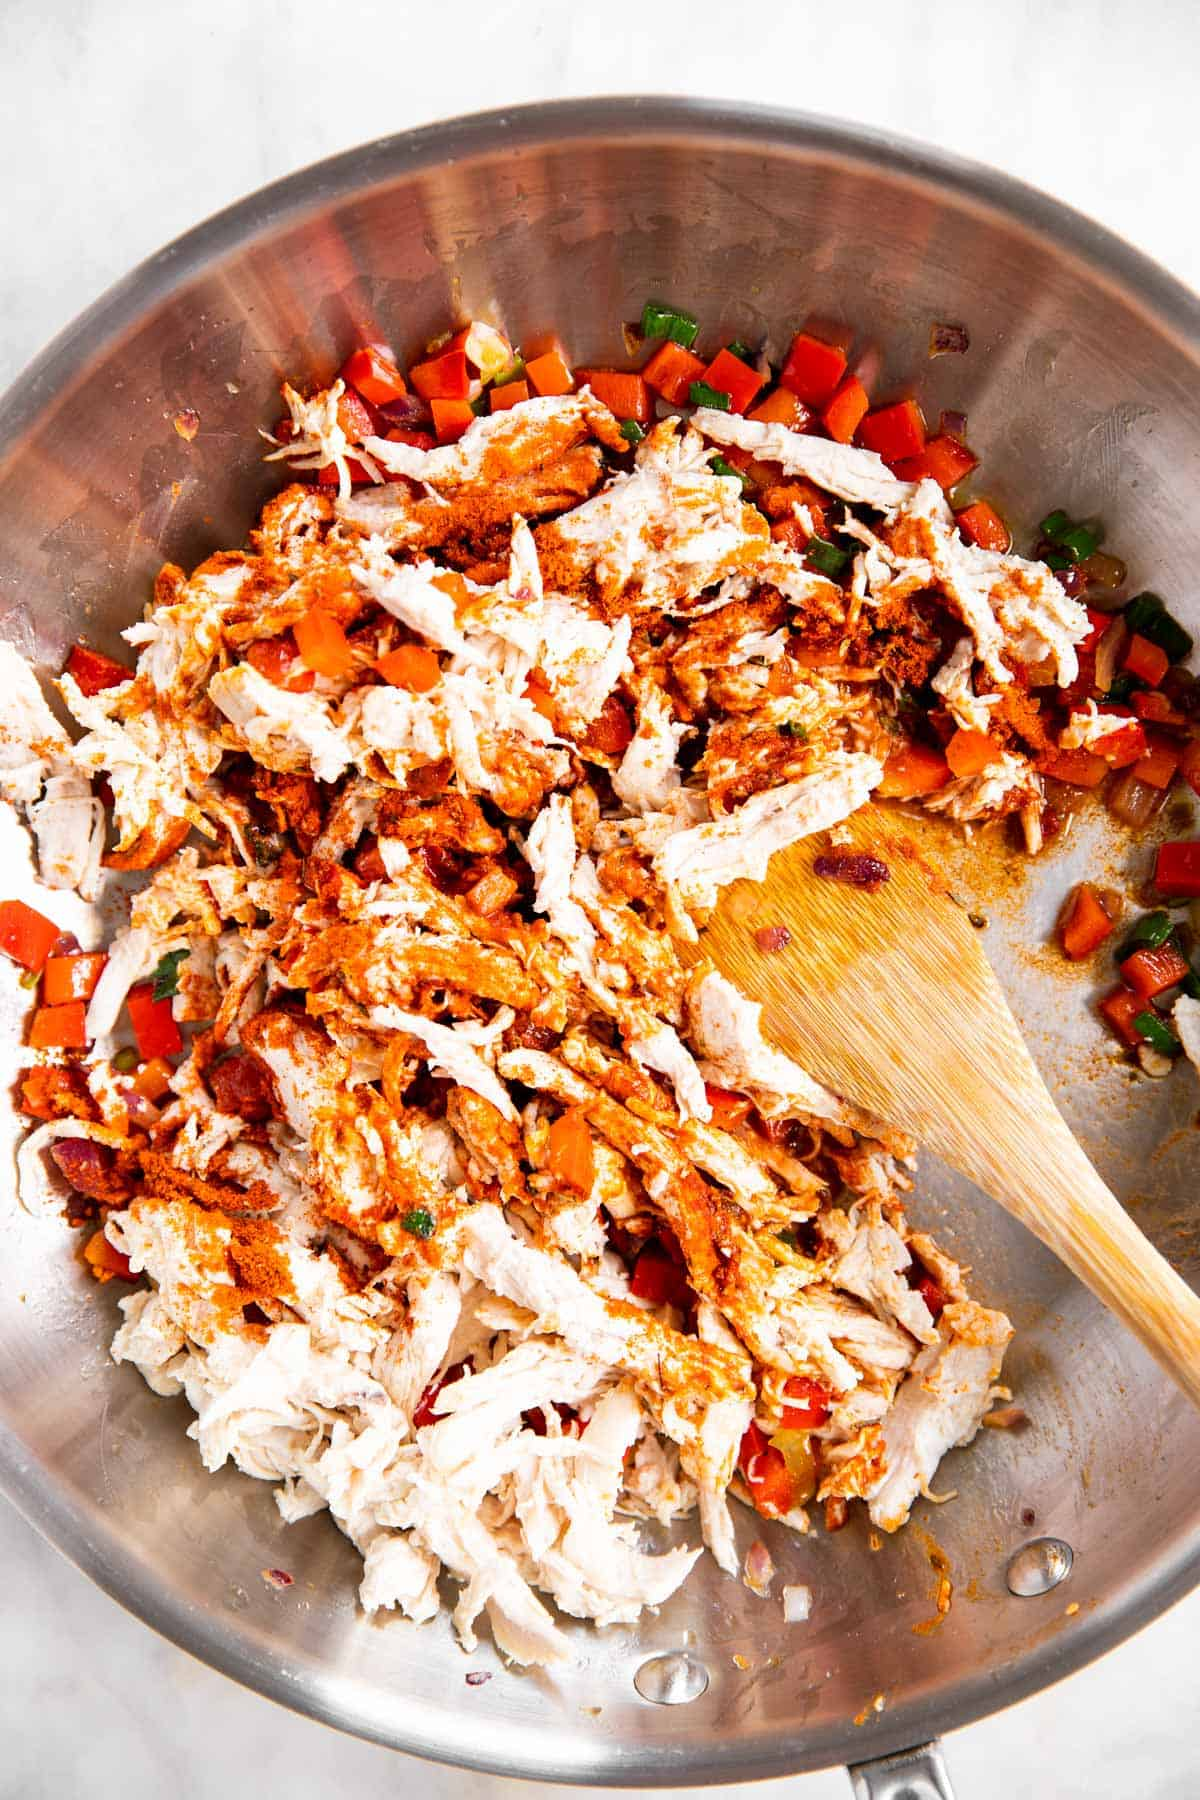 shredded chicken and seasoning being stirred into cooked onion and pepper mixture in skillet